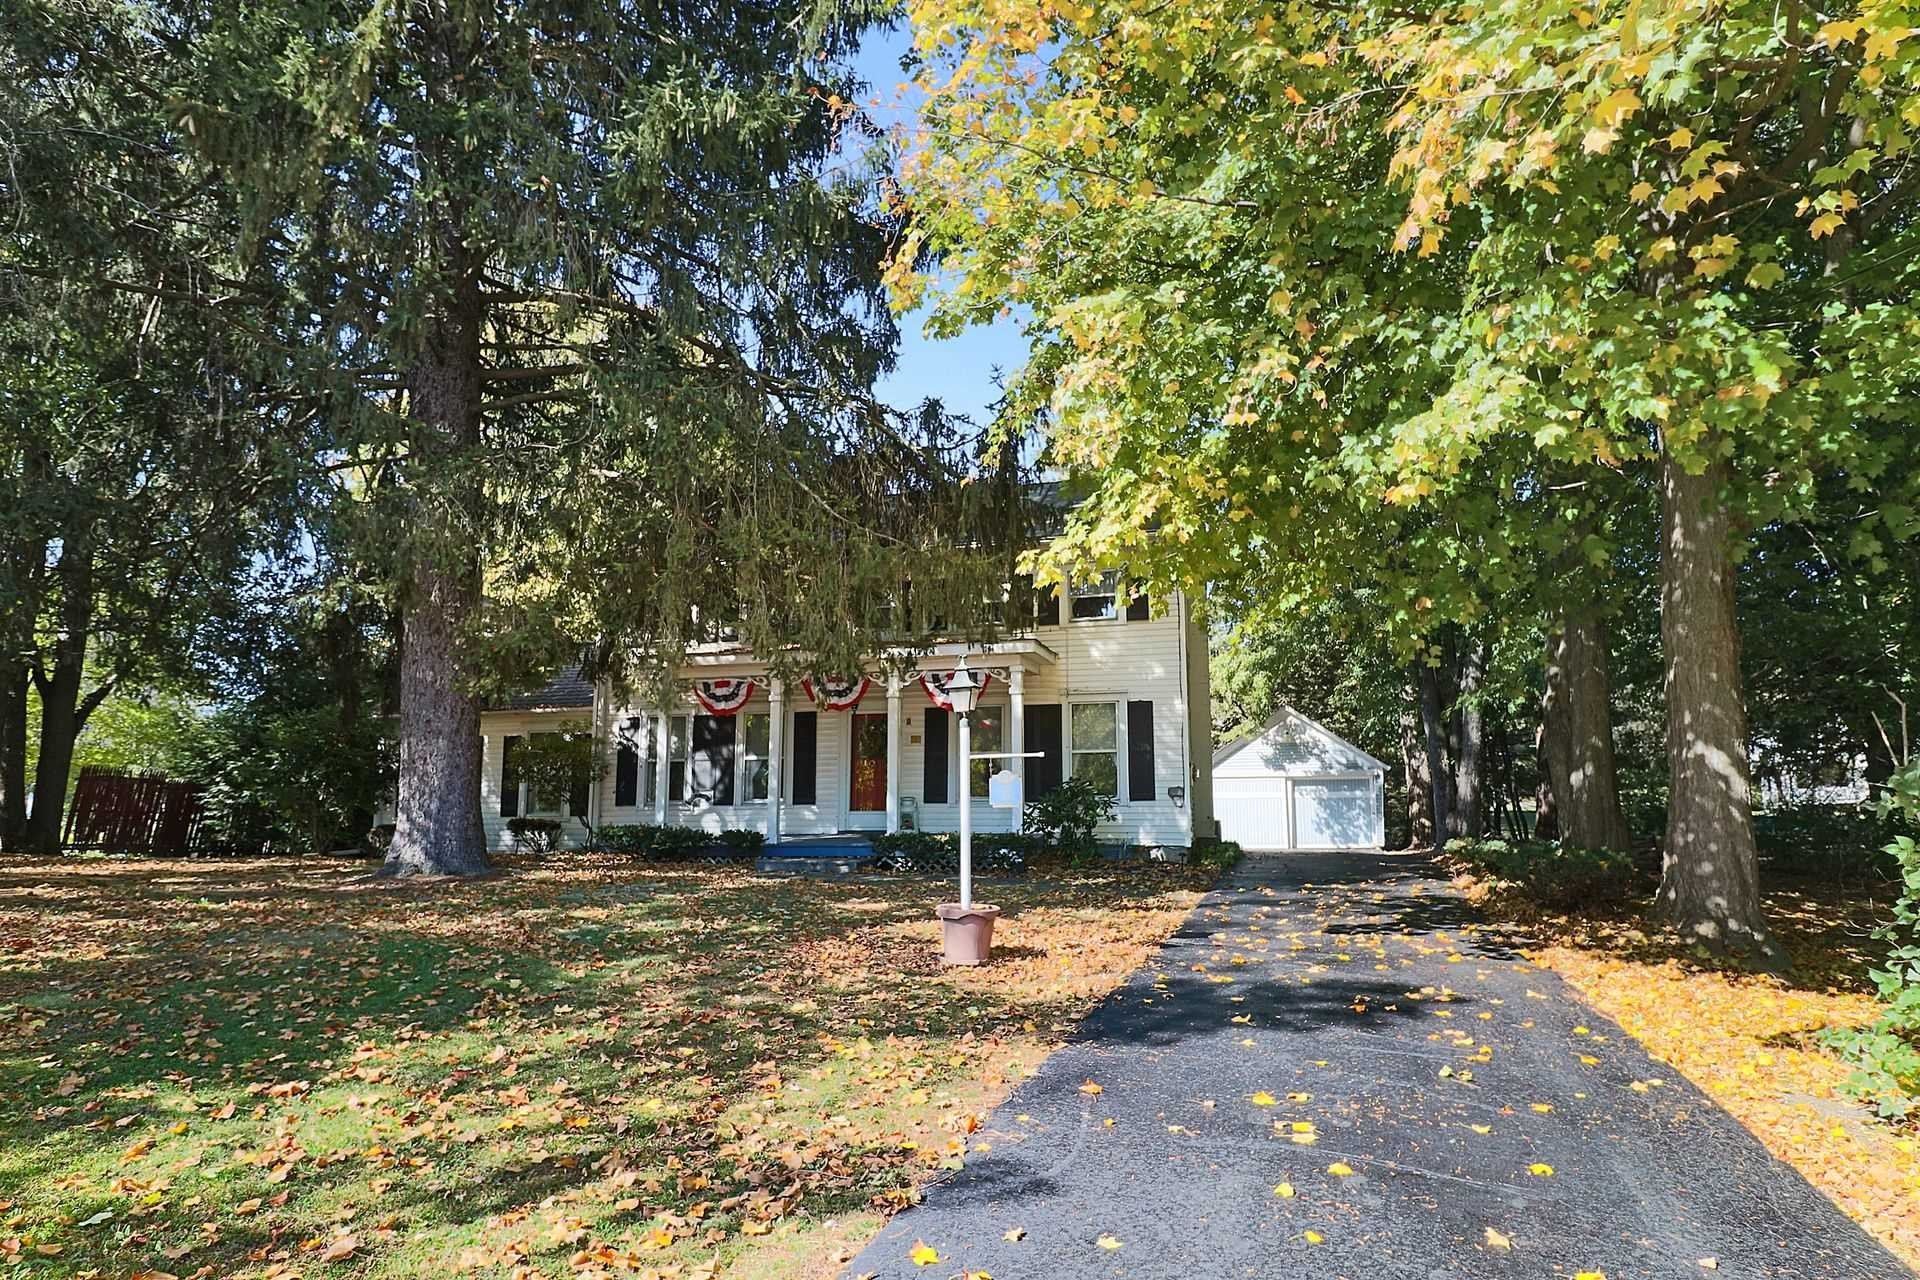 Single Family Home for Sale at 35 COTTAGE Street 35 COTTAGE Street Pleasant Valley, New York 12578 United States